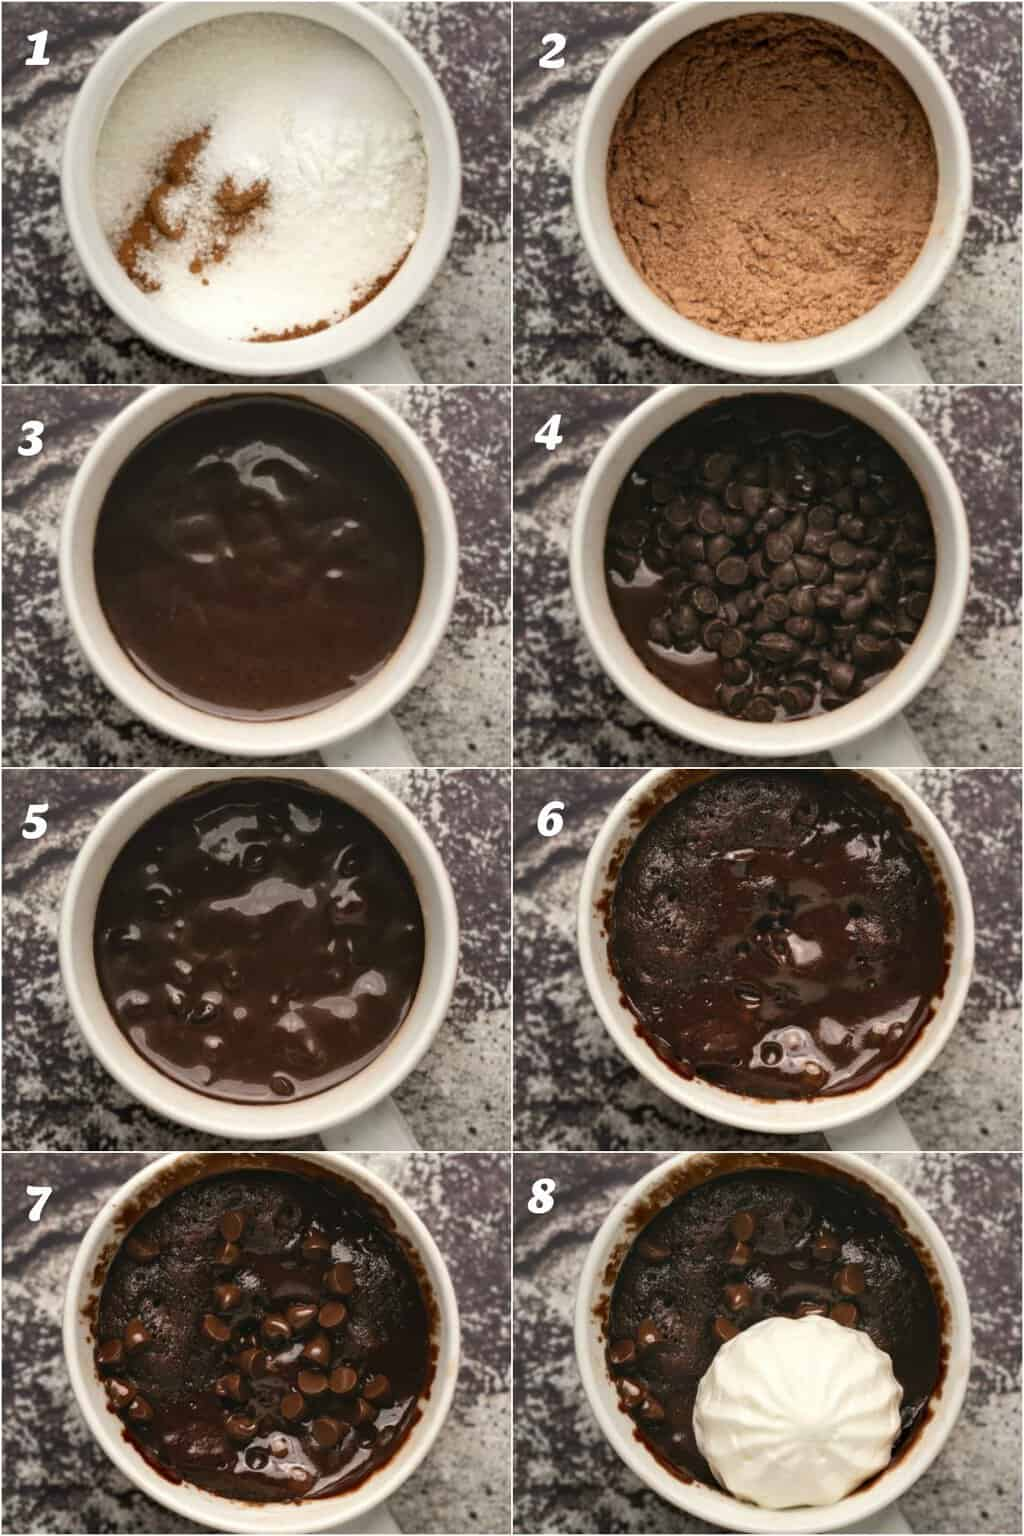 Step by step process photo collage of making a vegan mug cake.